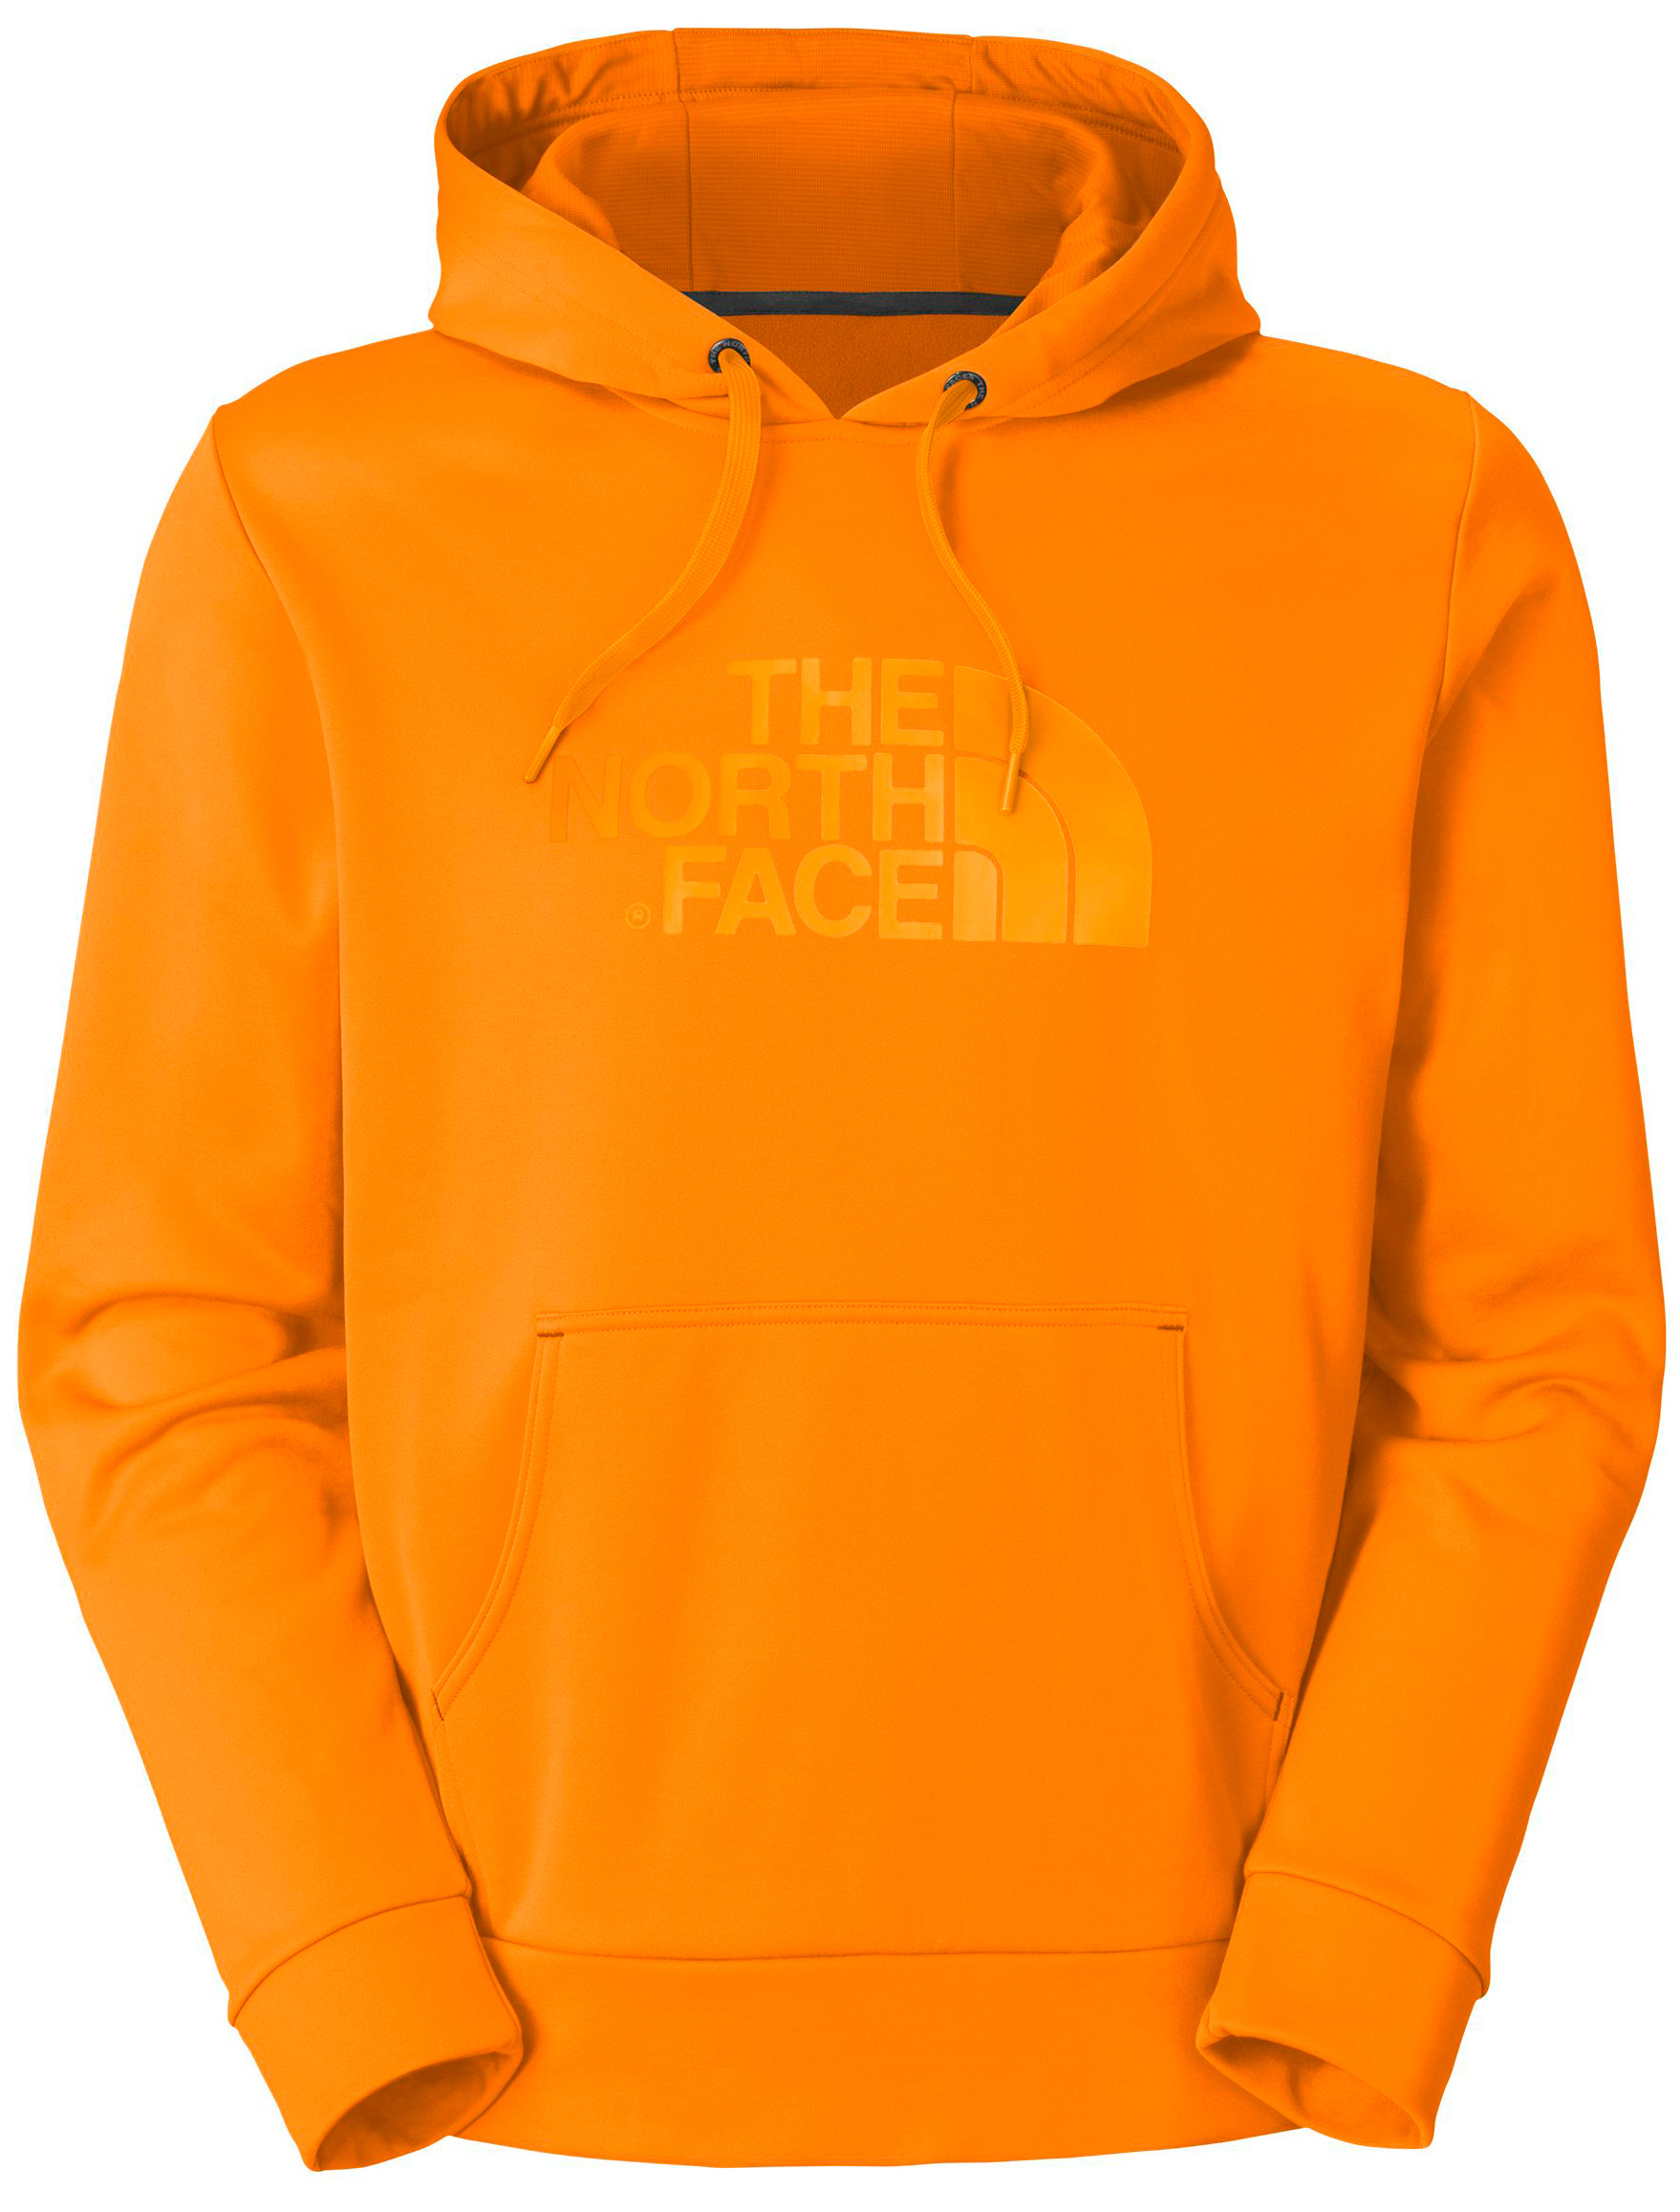 "The Surgent collection is perfect for wearing to and from races or the gym and during recovery. Key Features of the The North Face Surgent Hoodie: Relaxed fit Hand pockets Hidden media pocket Thumb loops Three-piece hood with liner Center back: 27.5"" Fabric: 210 g/m2 (6.2 oz/yd2) 100% polyester jersey-faced fleece;UPF 50 - $38.95"